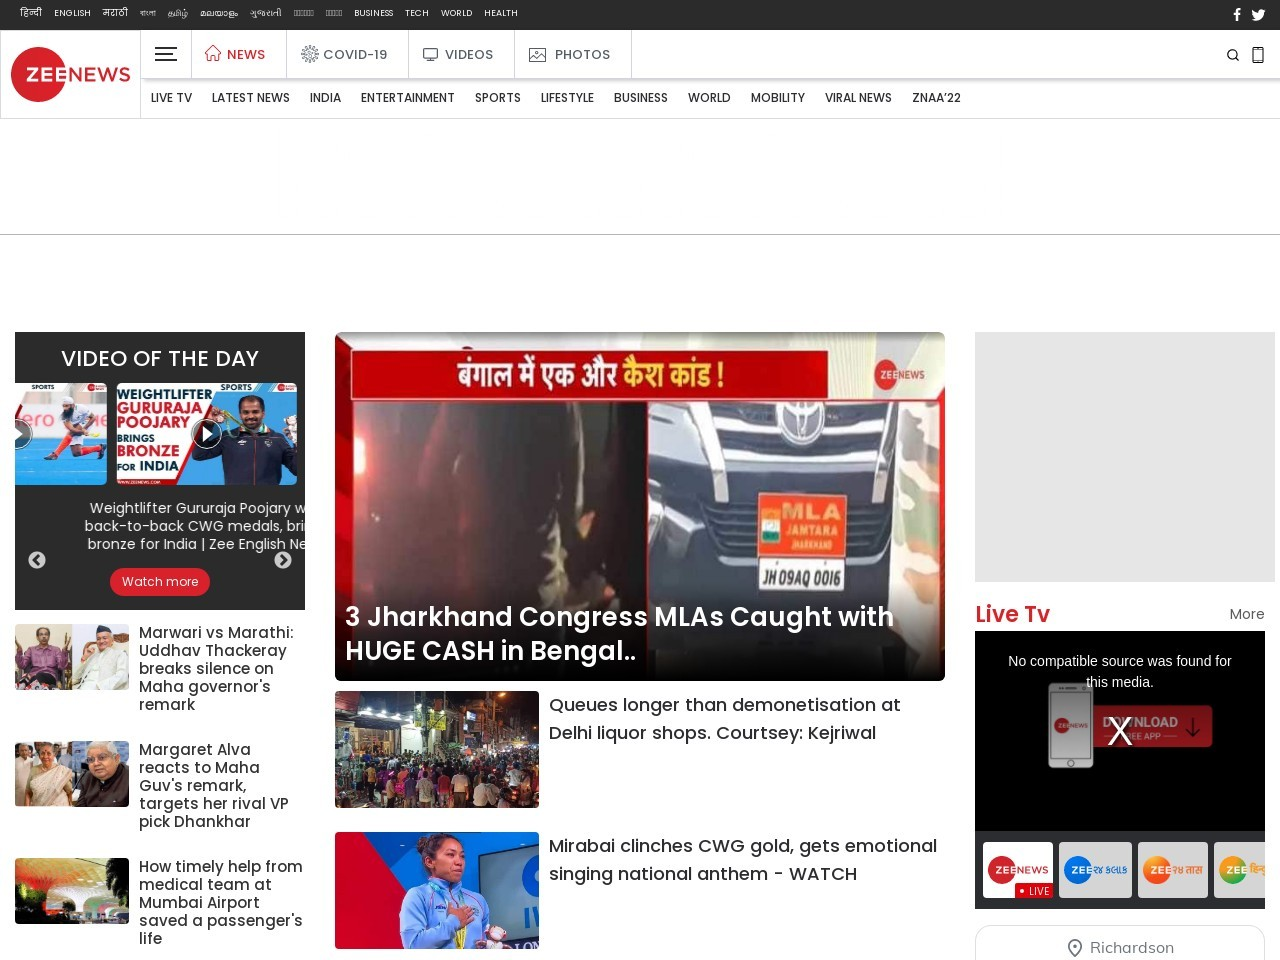 Premier League: Manchester City ease past Sunderland 2-0 to keep up title chase